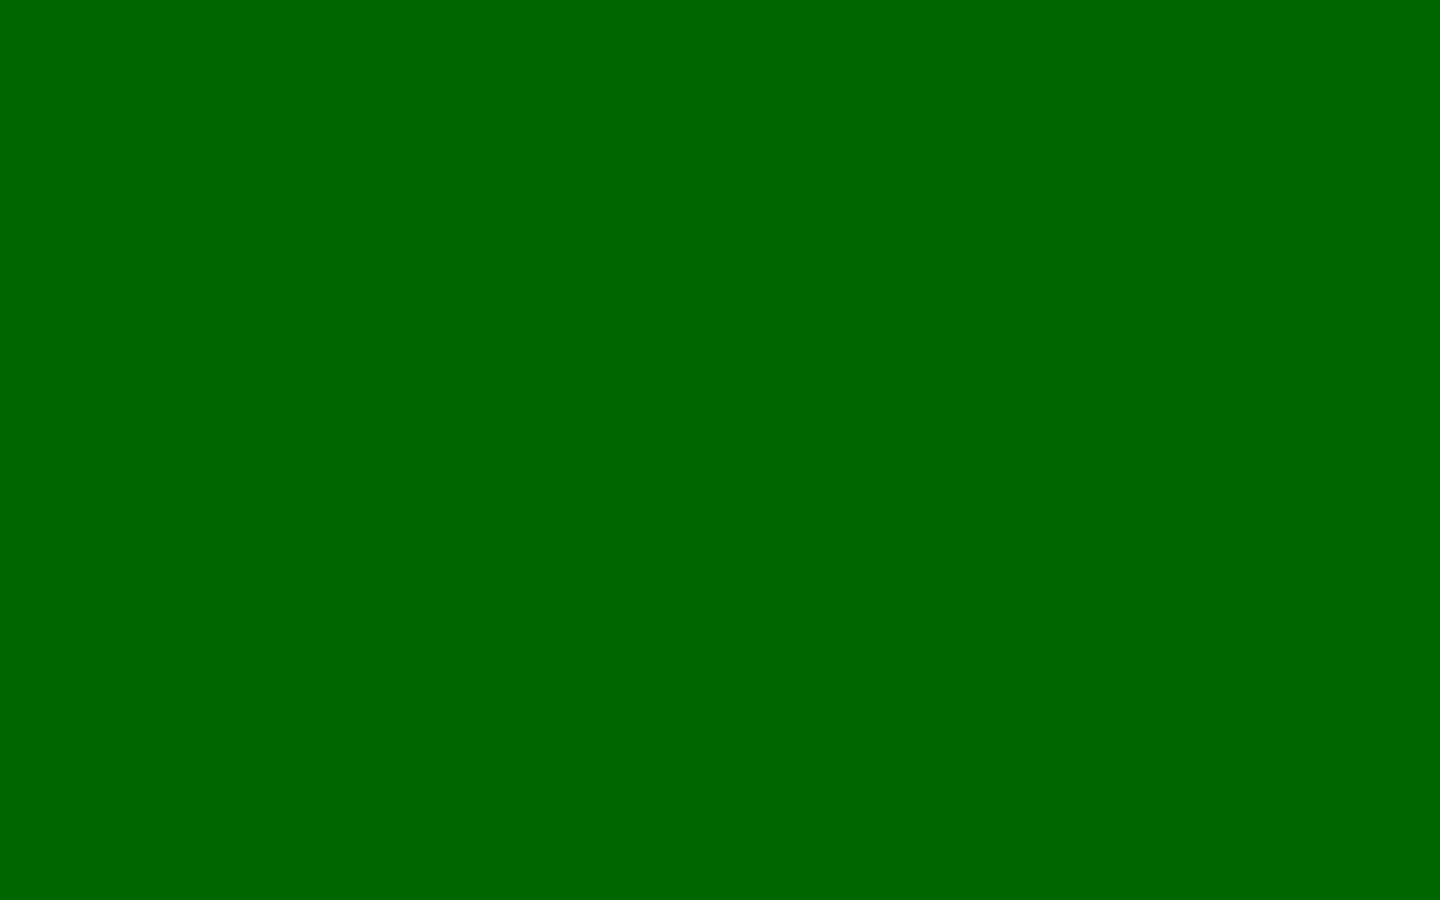 1440x900 Pakistan Green Solid Color Background